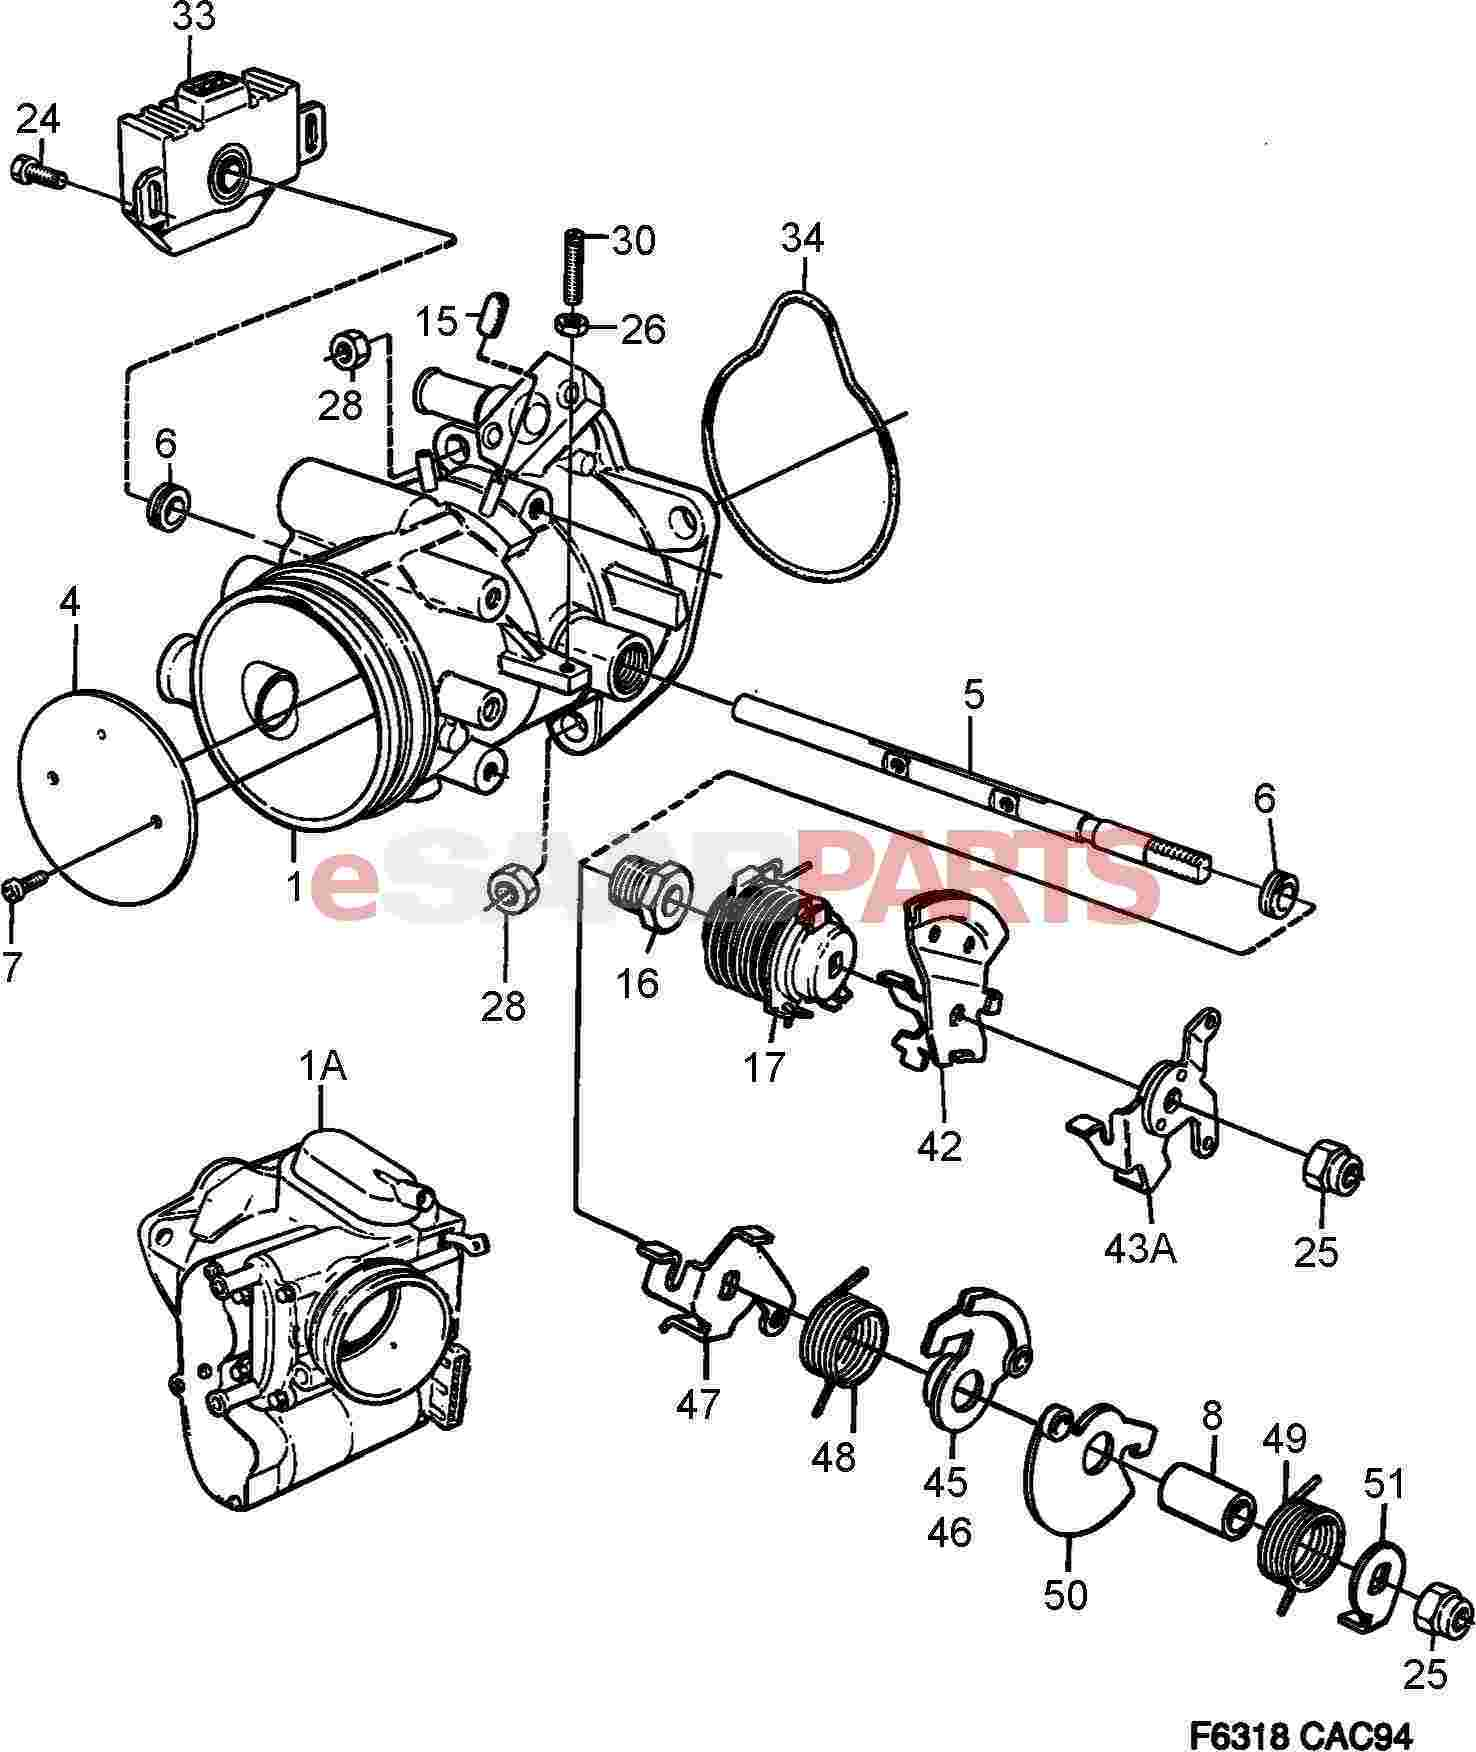 Saab 9000 Wiring Diagrams Saab 9-3 Engine Diagram Wiring